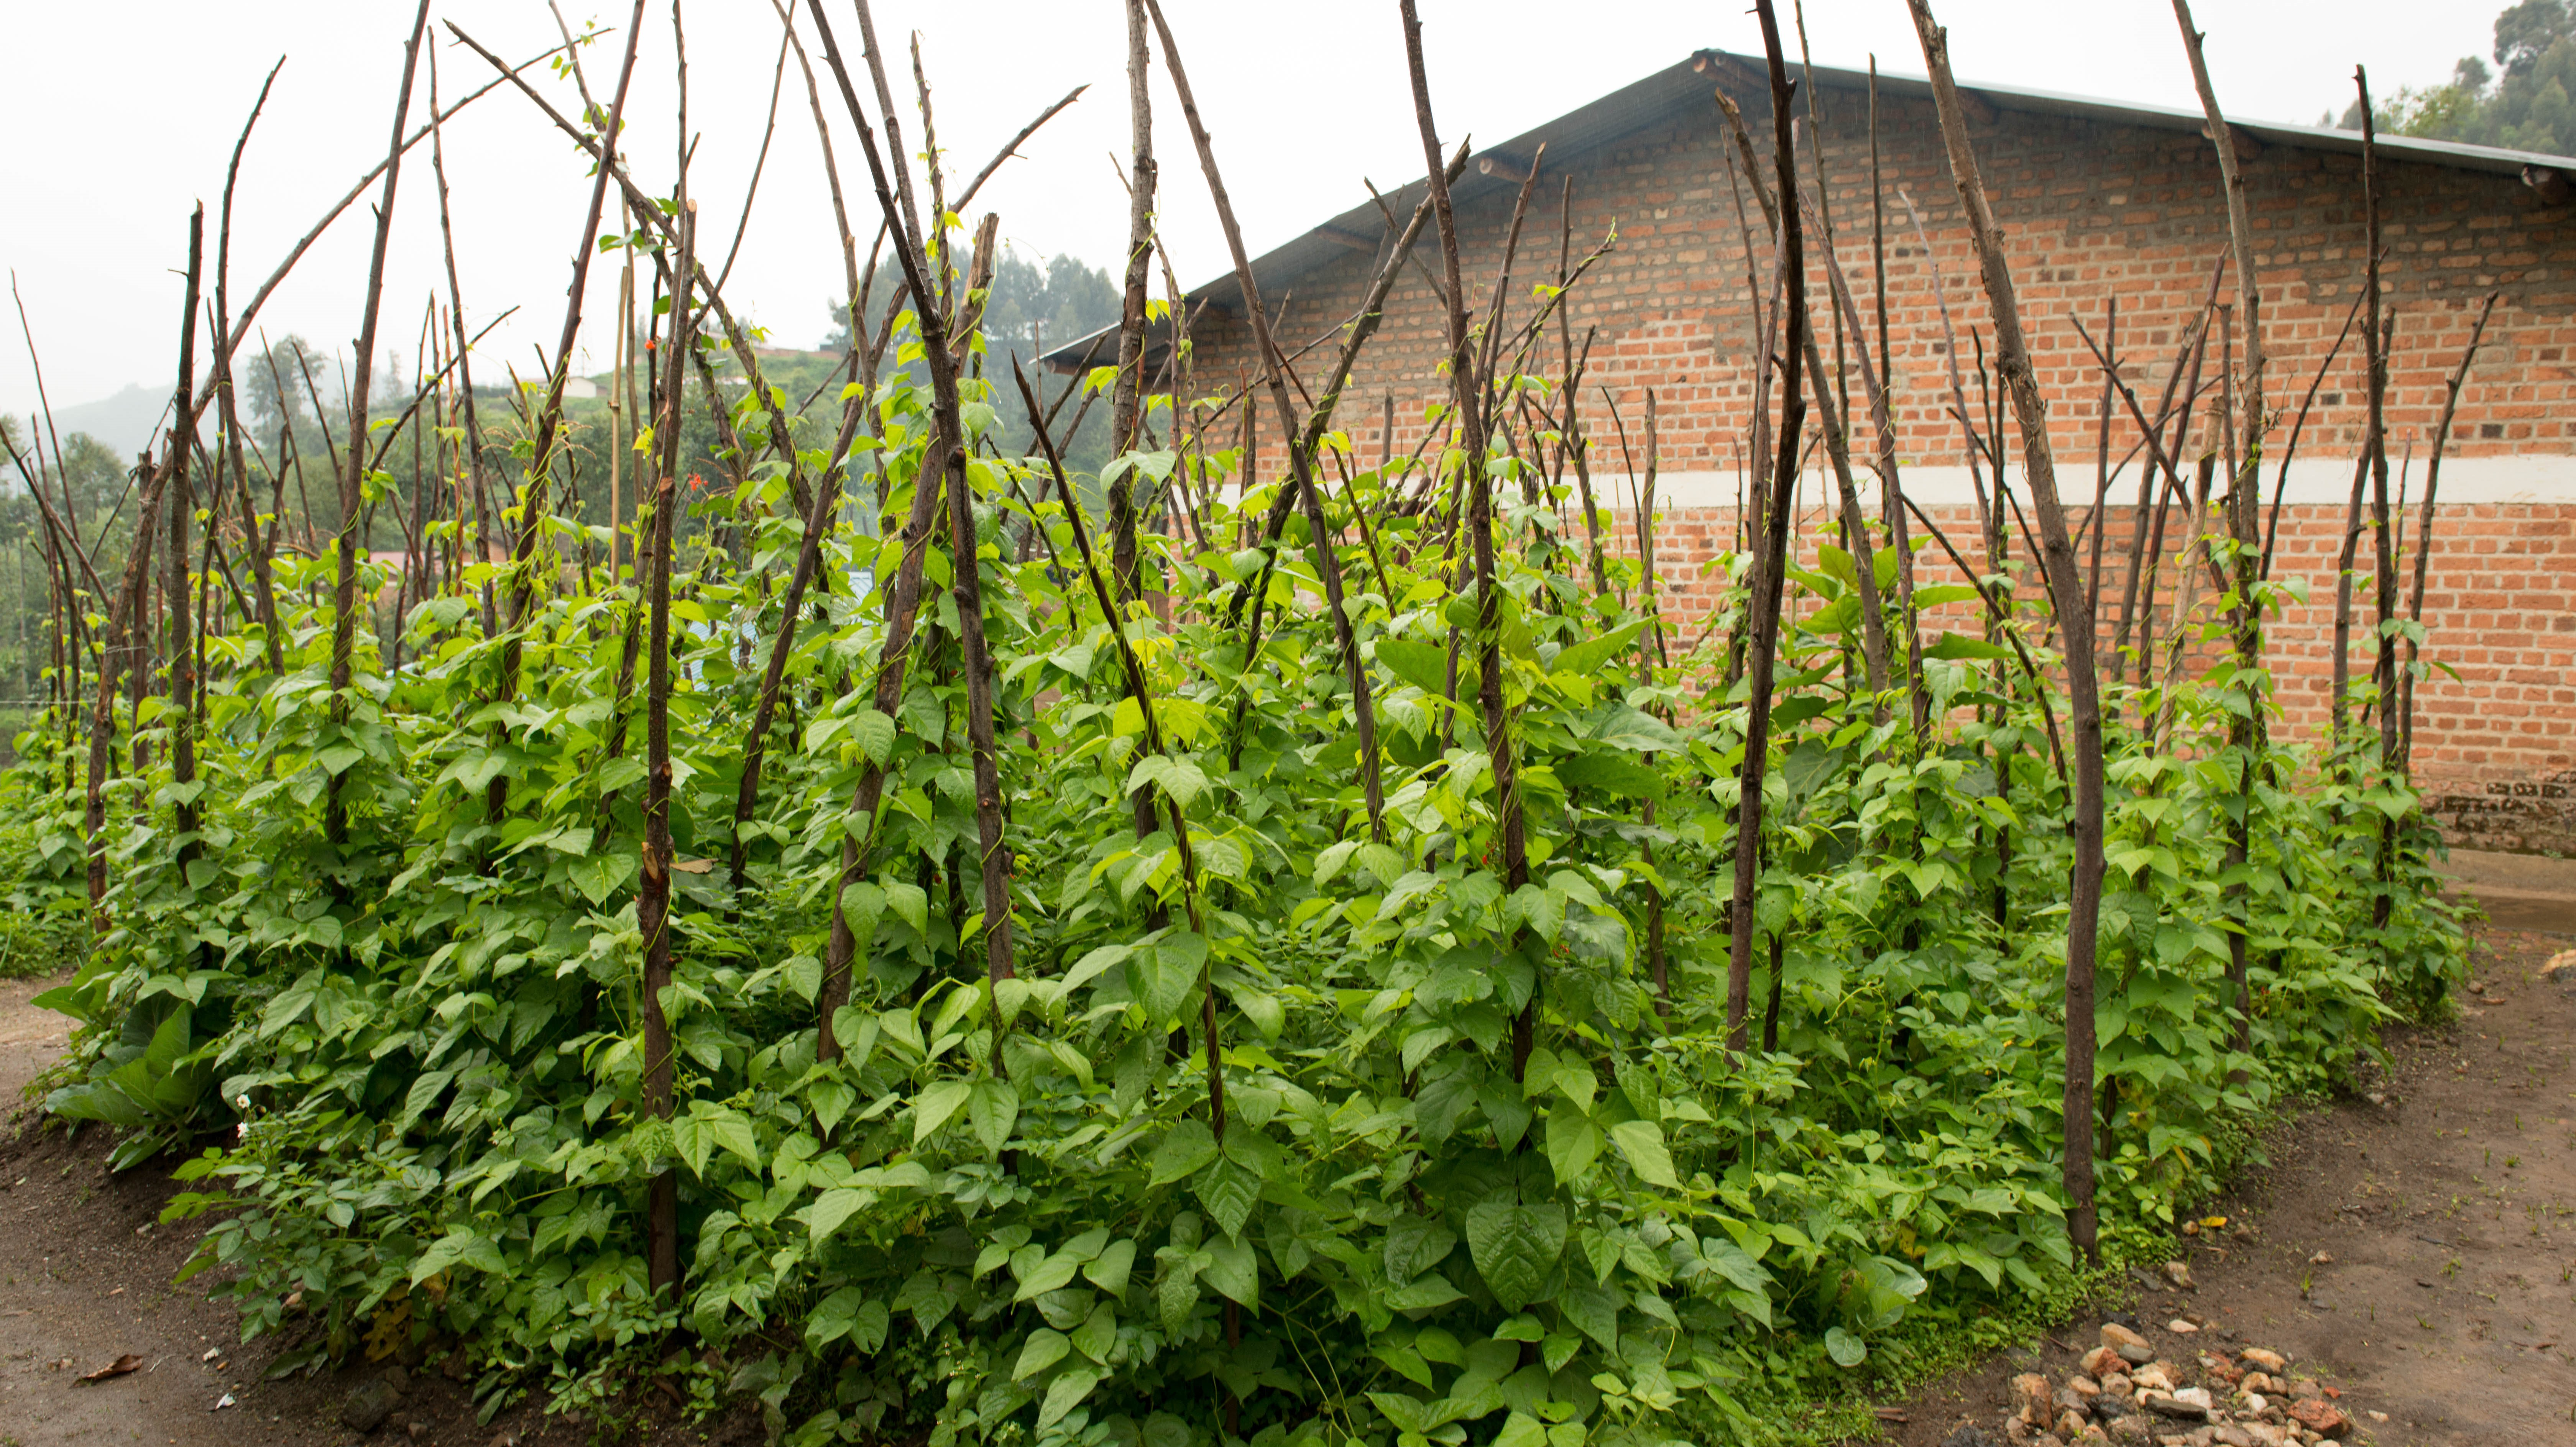 Climbing beans require strong stakes to hold additional weight as they grow and produce pods. Photo: World Agroforestry/Caroline Njoki